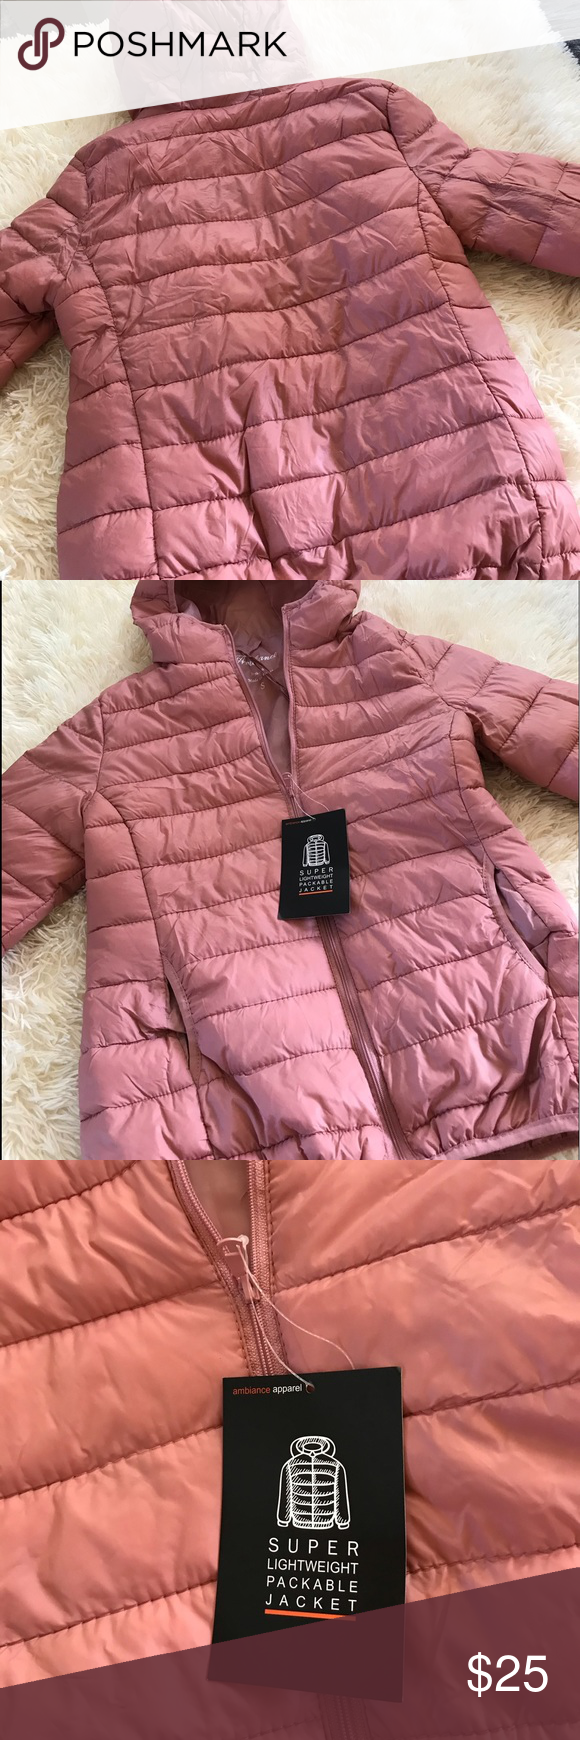 Ambiance Woman S Quilted Puffer Jacket Quilted Puffer Jacket Jackets Packable Jacket [ 1740 x 580 Pixel ]